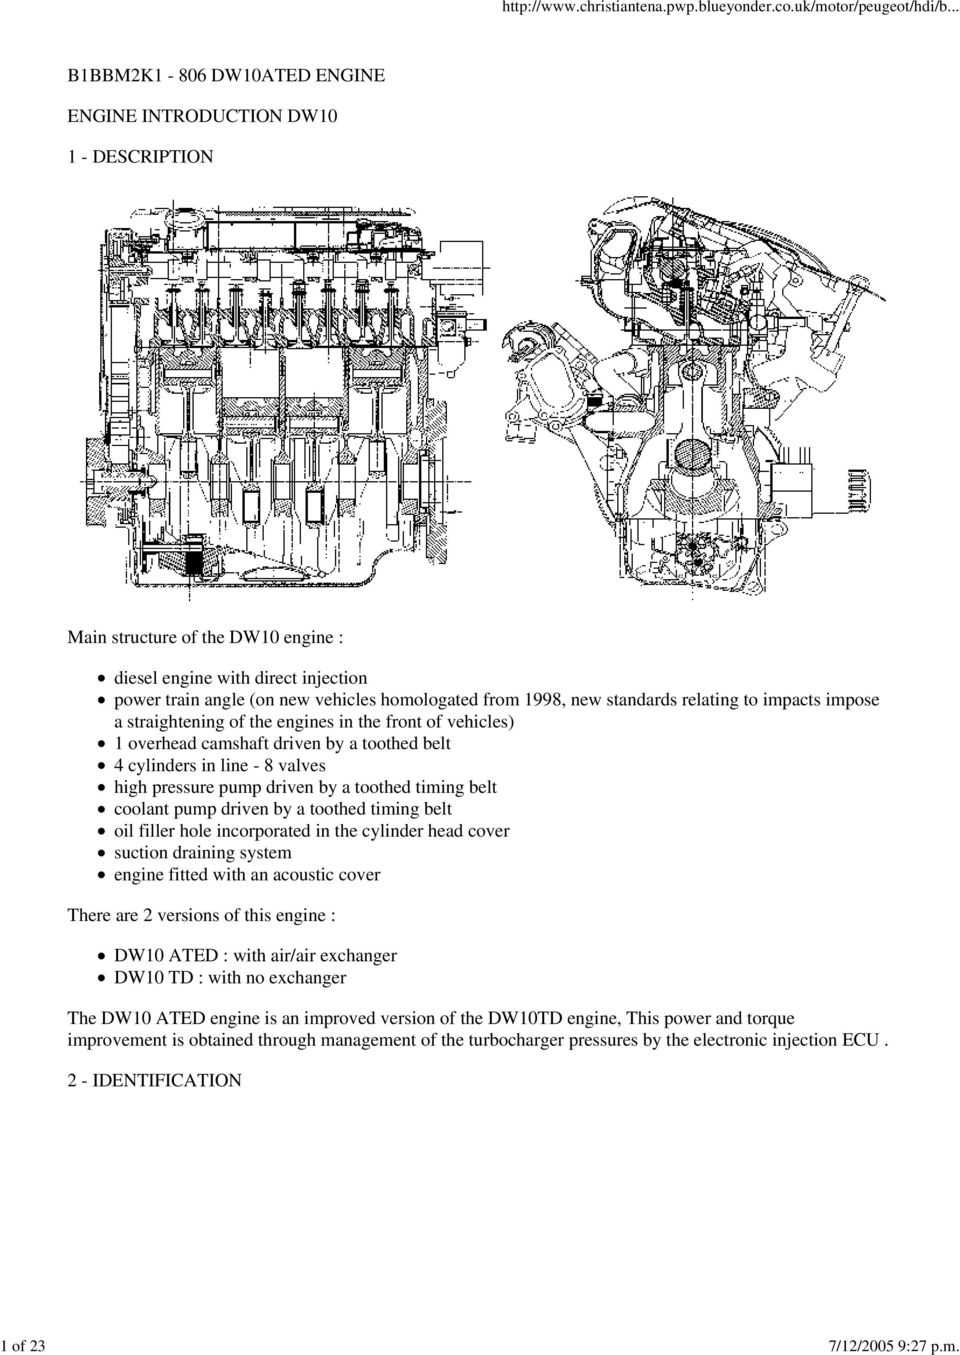 B1BBM2K1-806 DW10ATED ENGINE ENGINE INTRODUCTION DW10 1 - DESCRIPTION Main structure of the DW10 engine : diesel engine with direct injection power train angle (on new vehicles homologated from 1998,